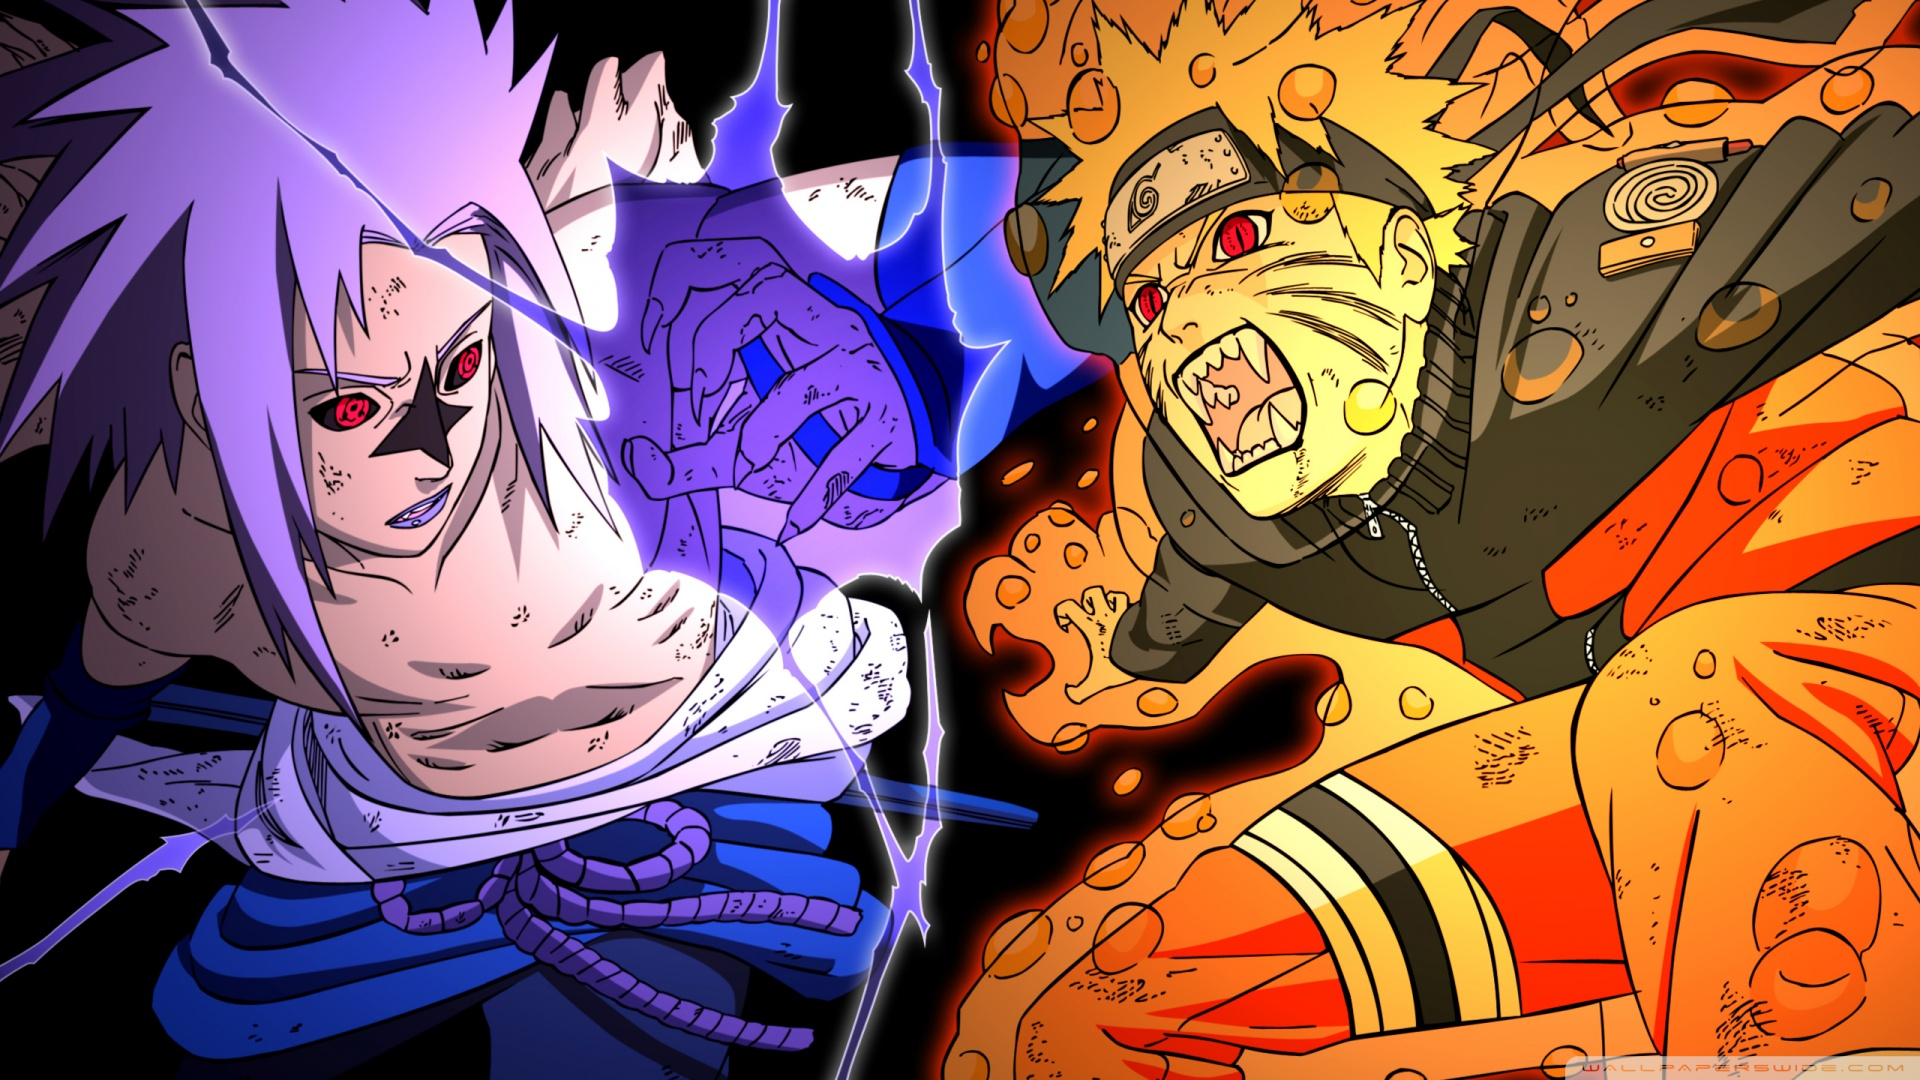 naruto vs sasuke - fighting ❤ uhd desktop wallpaper for ultra hd